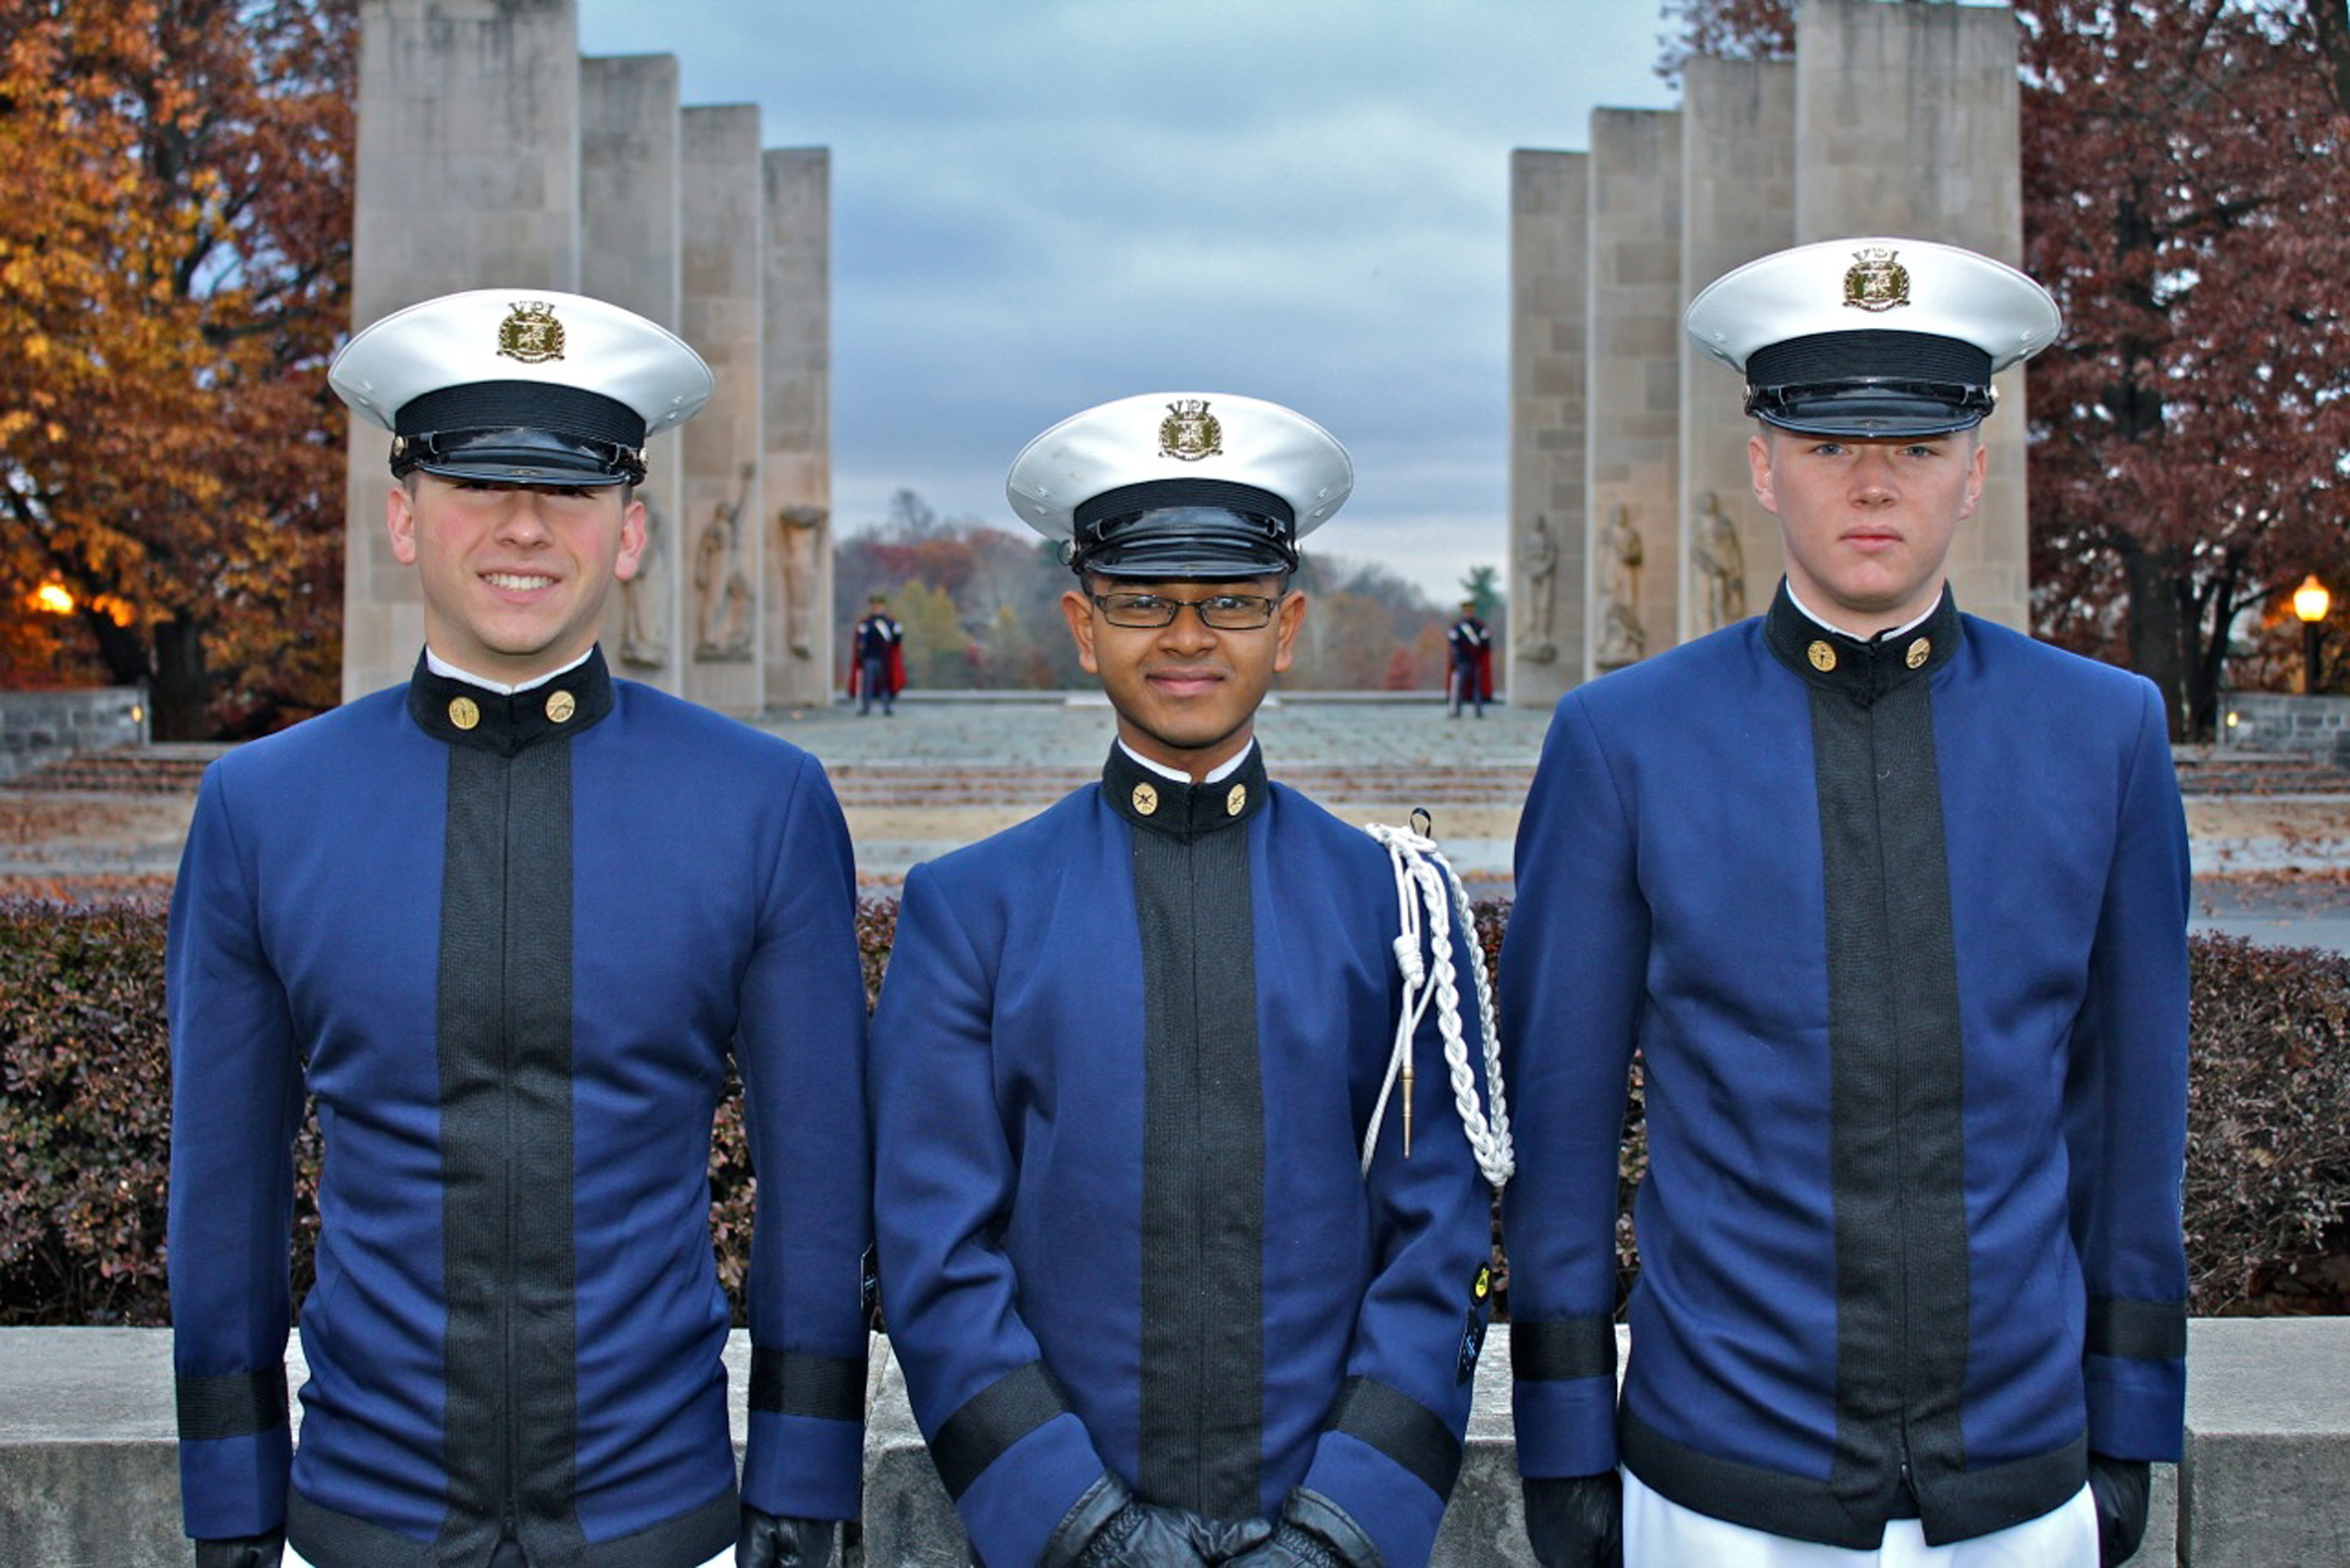 From left to right are Cadets Griffin Shaw, Syed Rumman, and Mark Foster in from of the Pylons